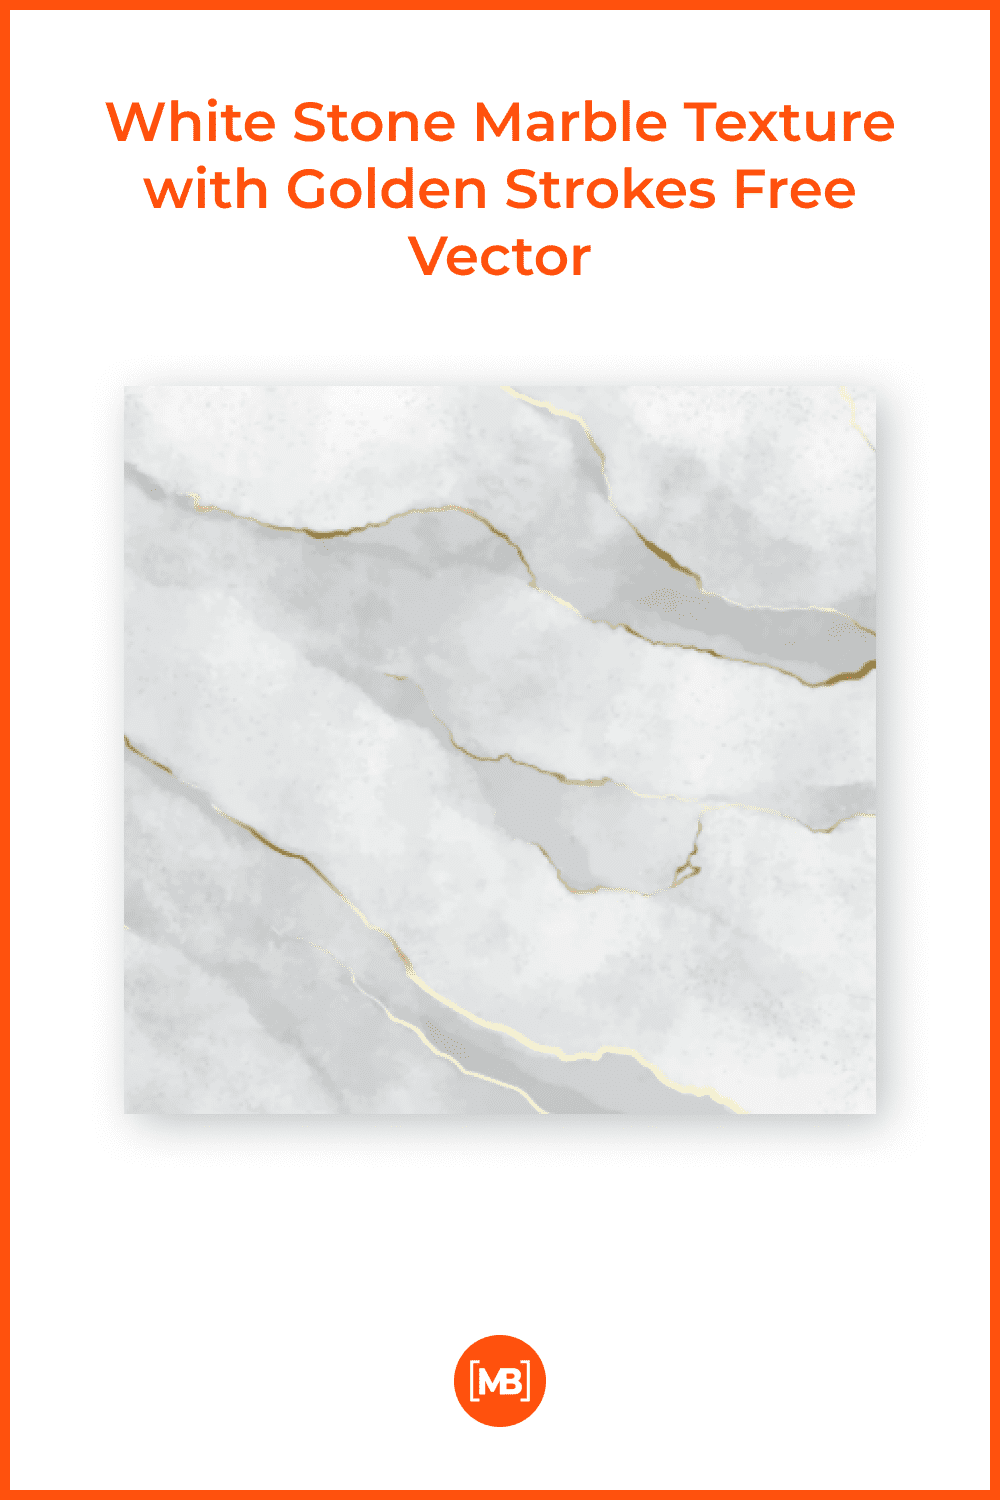 White stone marble texture with golden strokes.